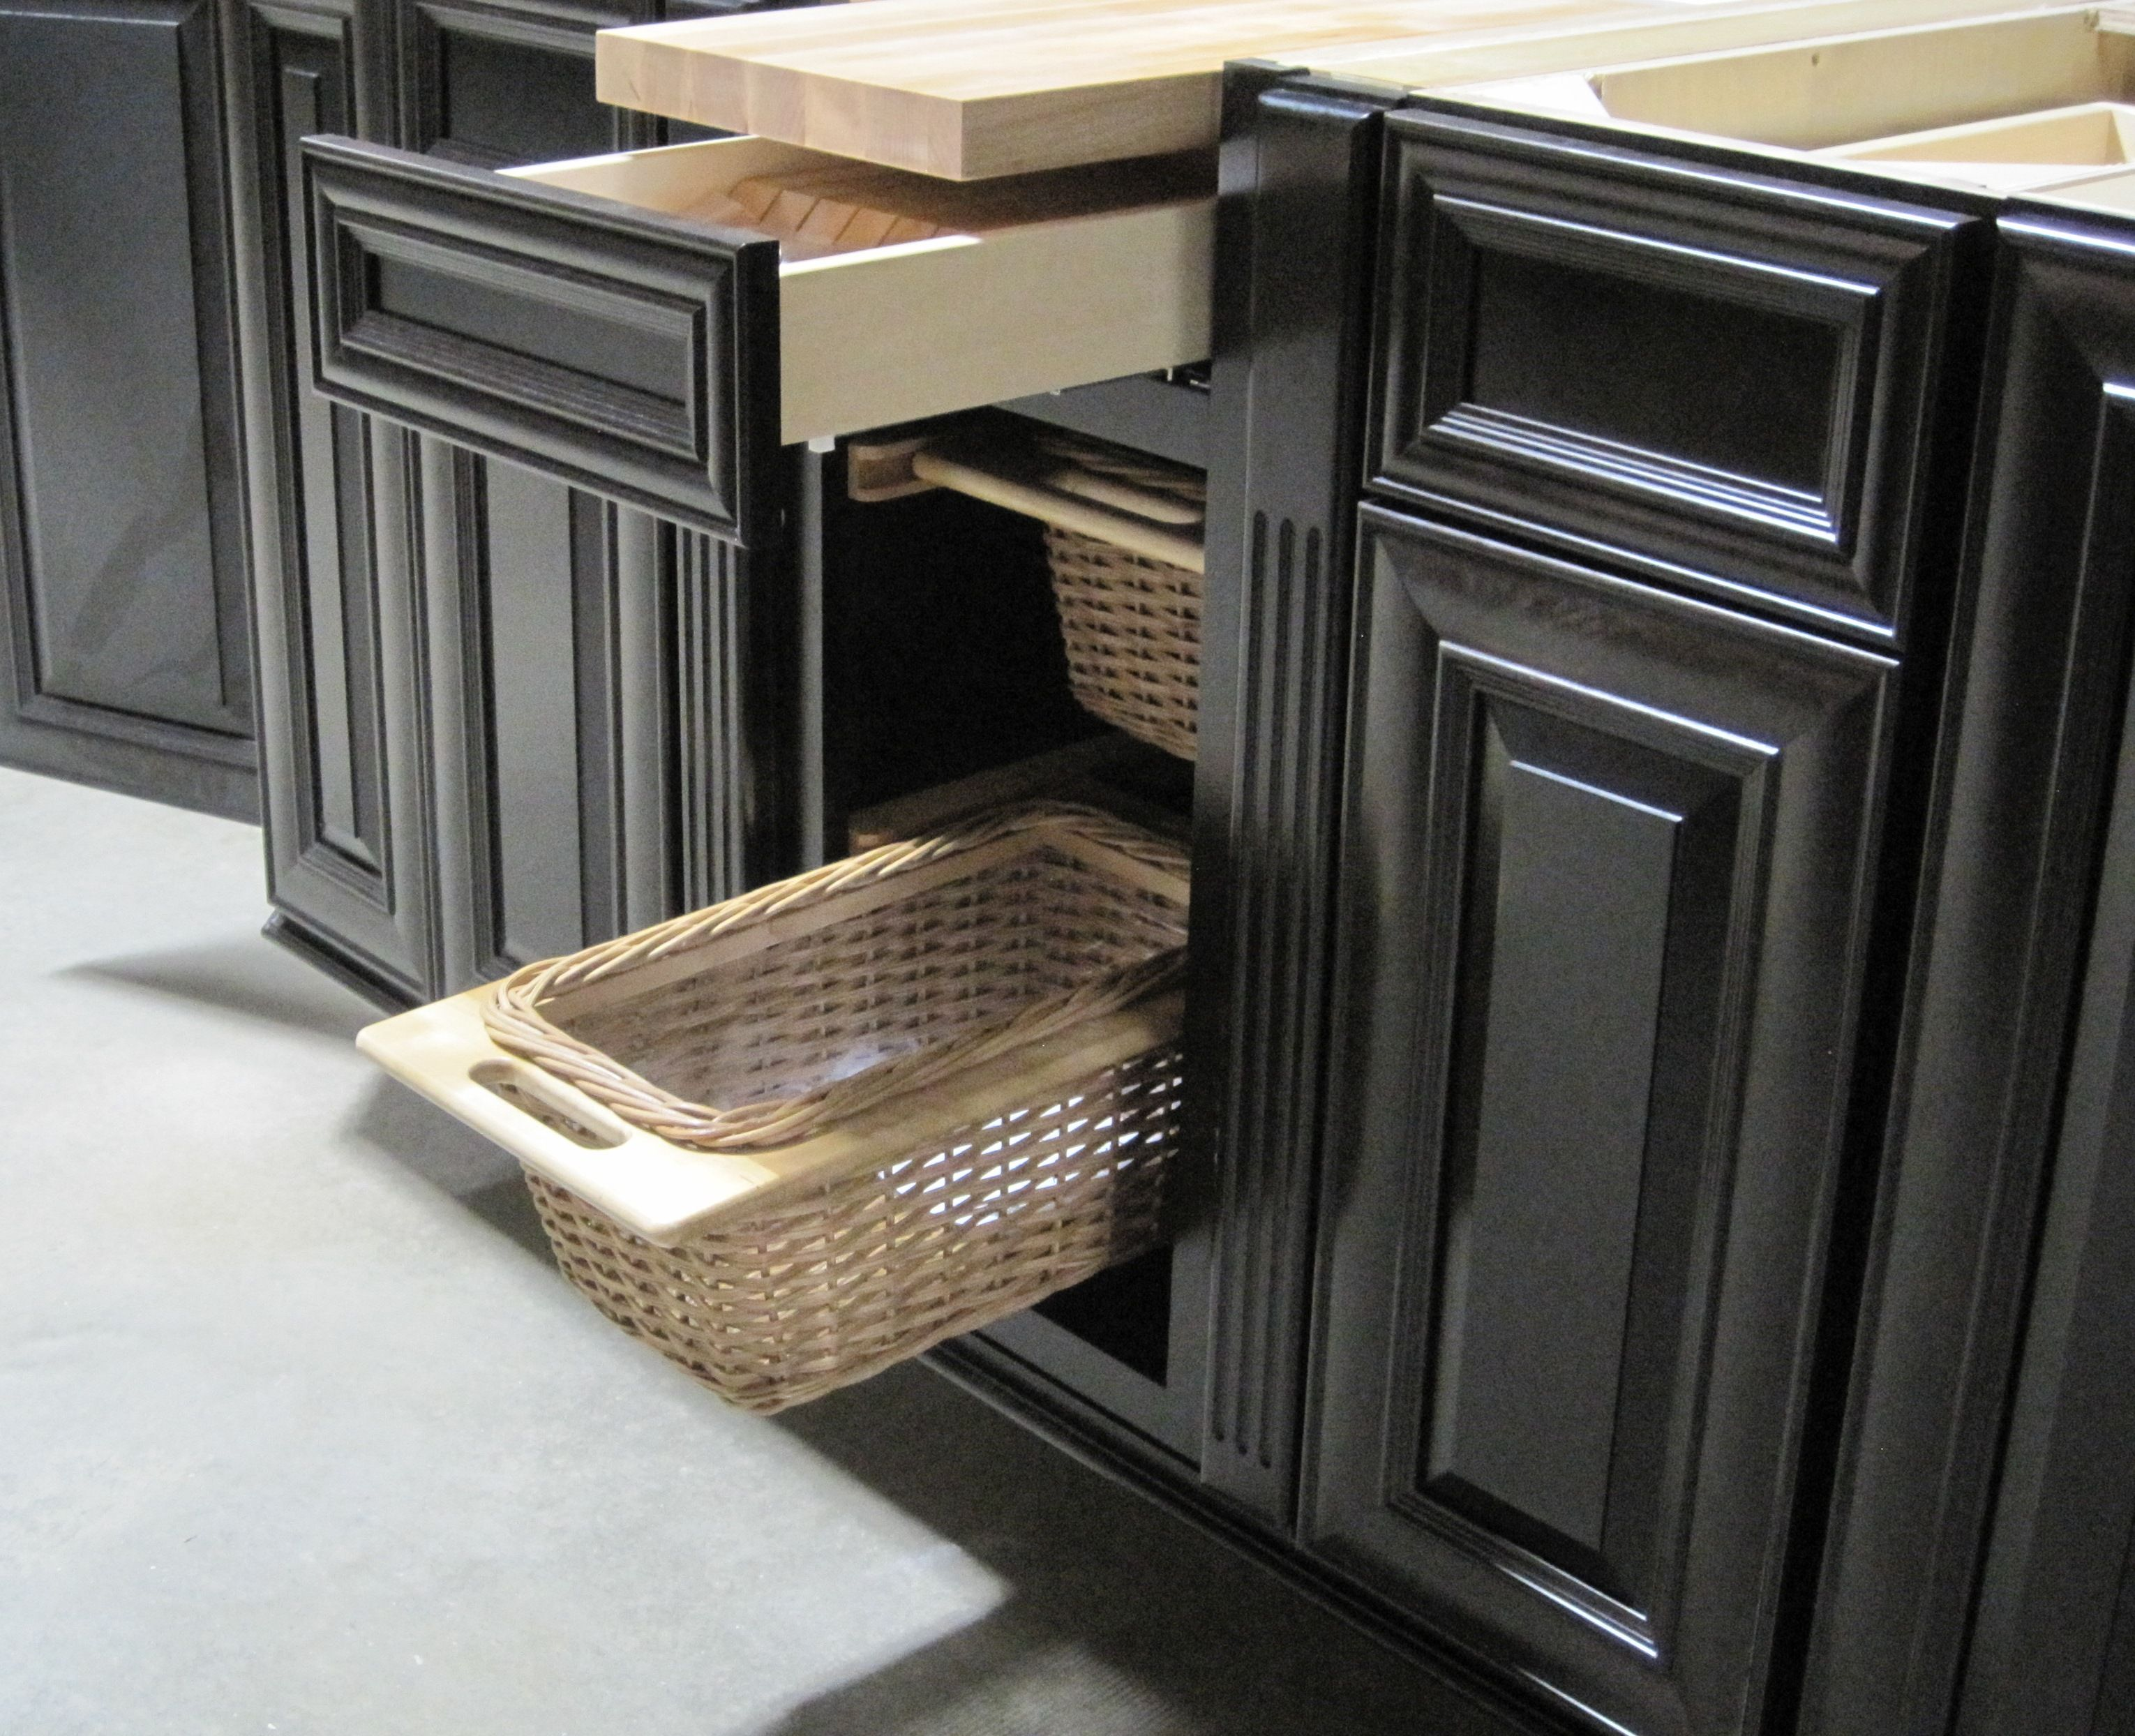 Beautiful Drawer Baskets Available In Most Cabinets. Brighton Cabinetry~ I Want These  Baskets. Where